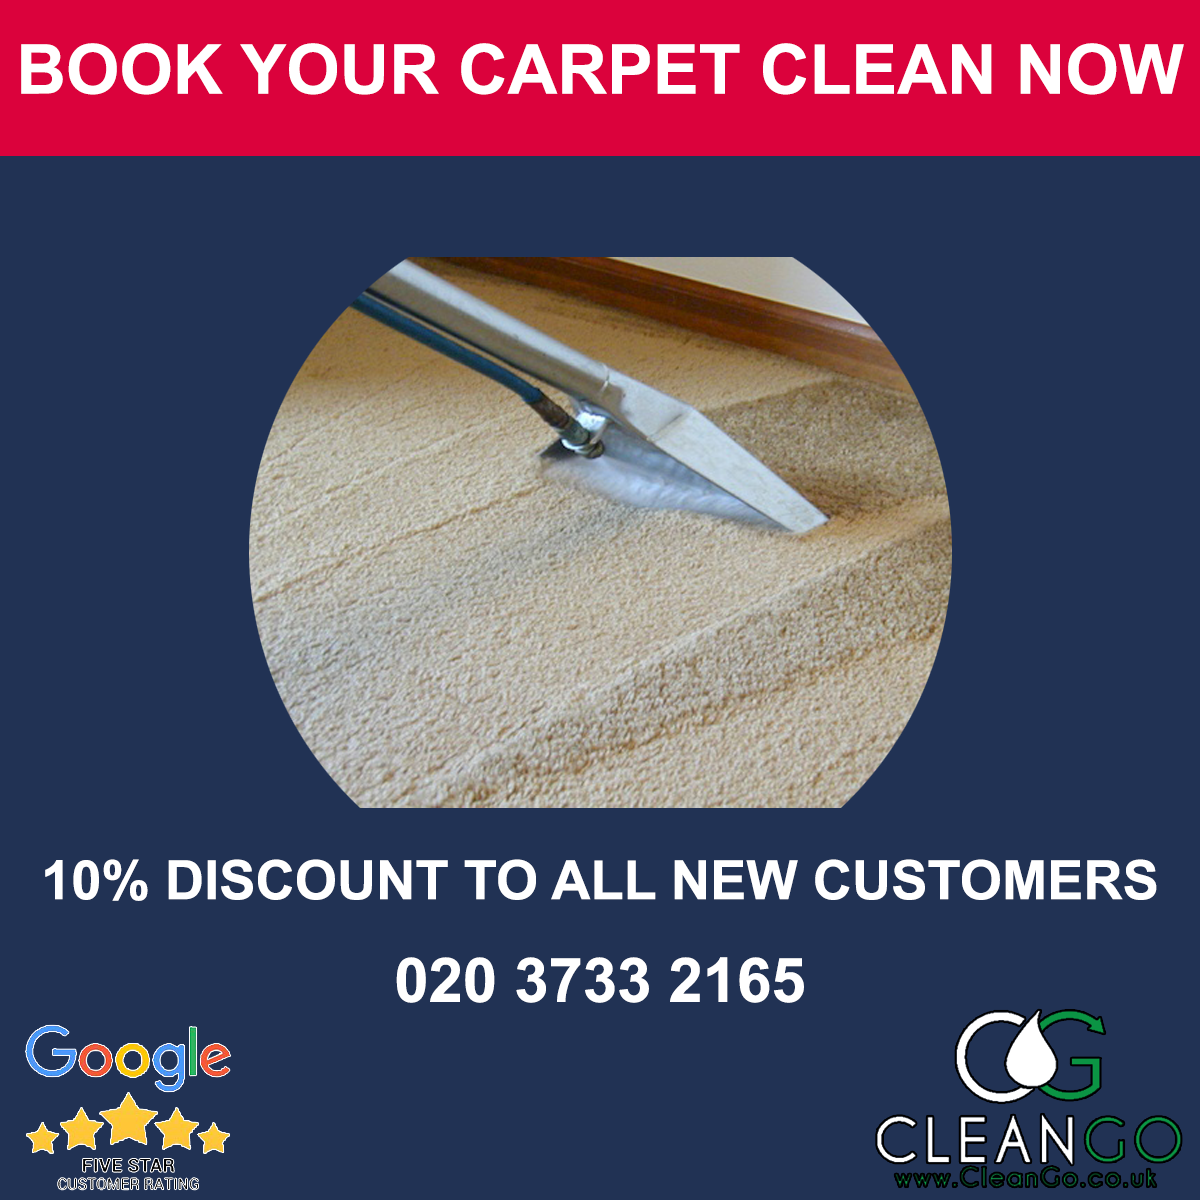 Carpet Cleaning Theydon BOIS - Professional Carpet Cleaning